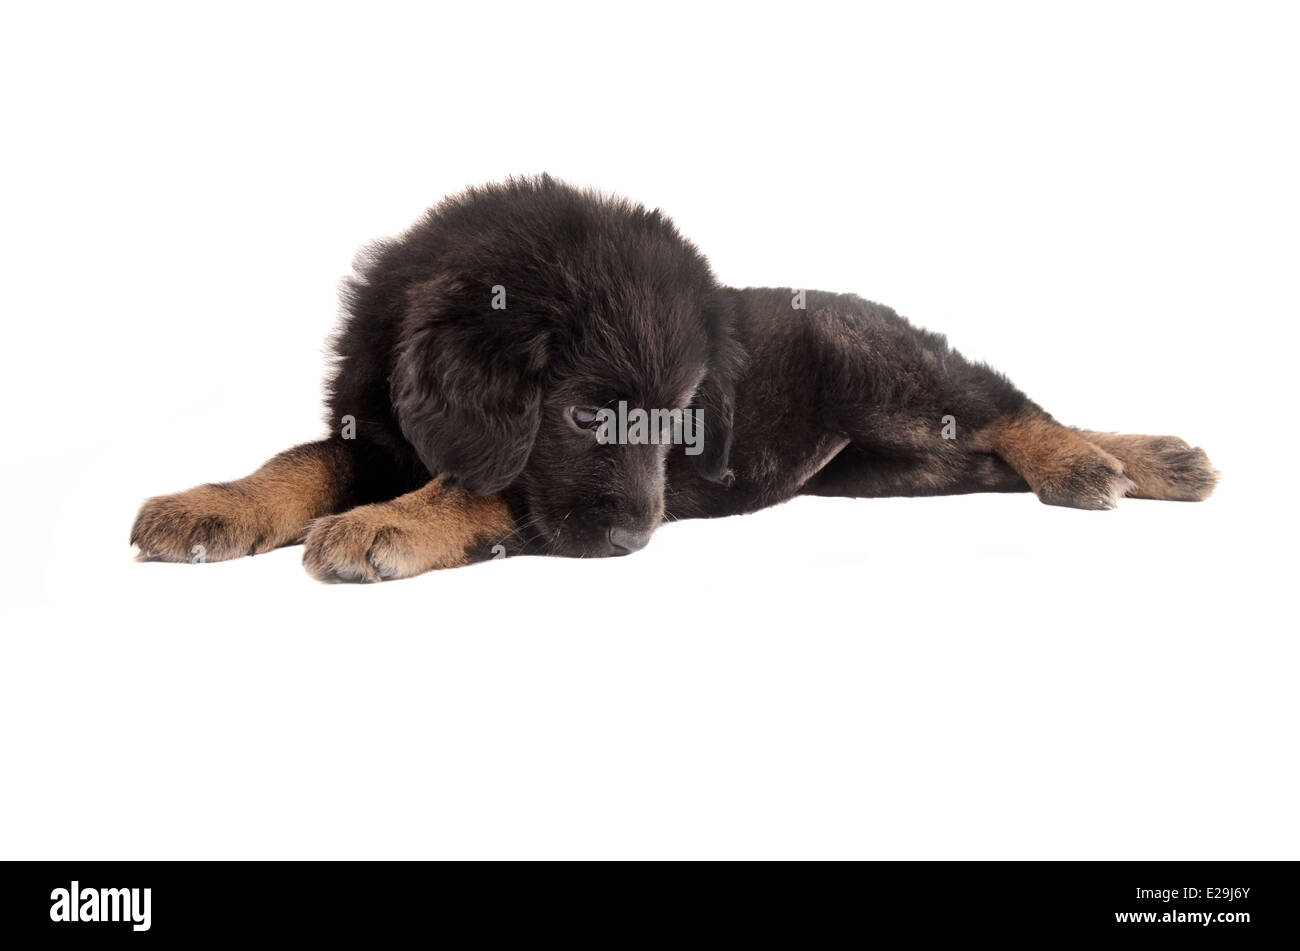 Adorable sad black and tan puppy laying on white - Stock Image